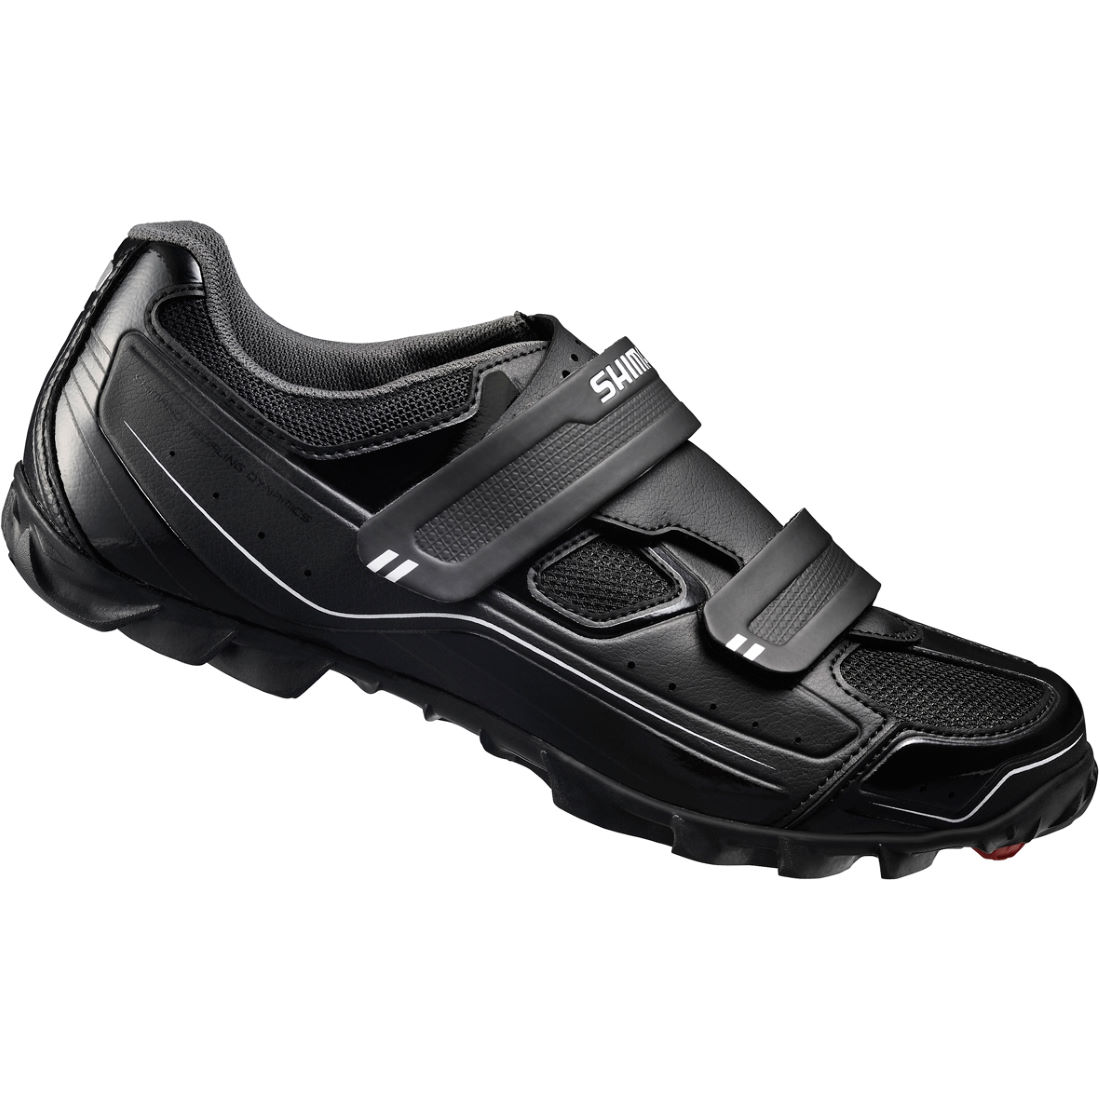 Spd Cycle Shoes Uk